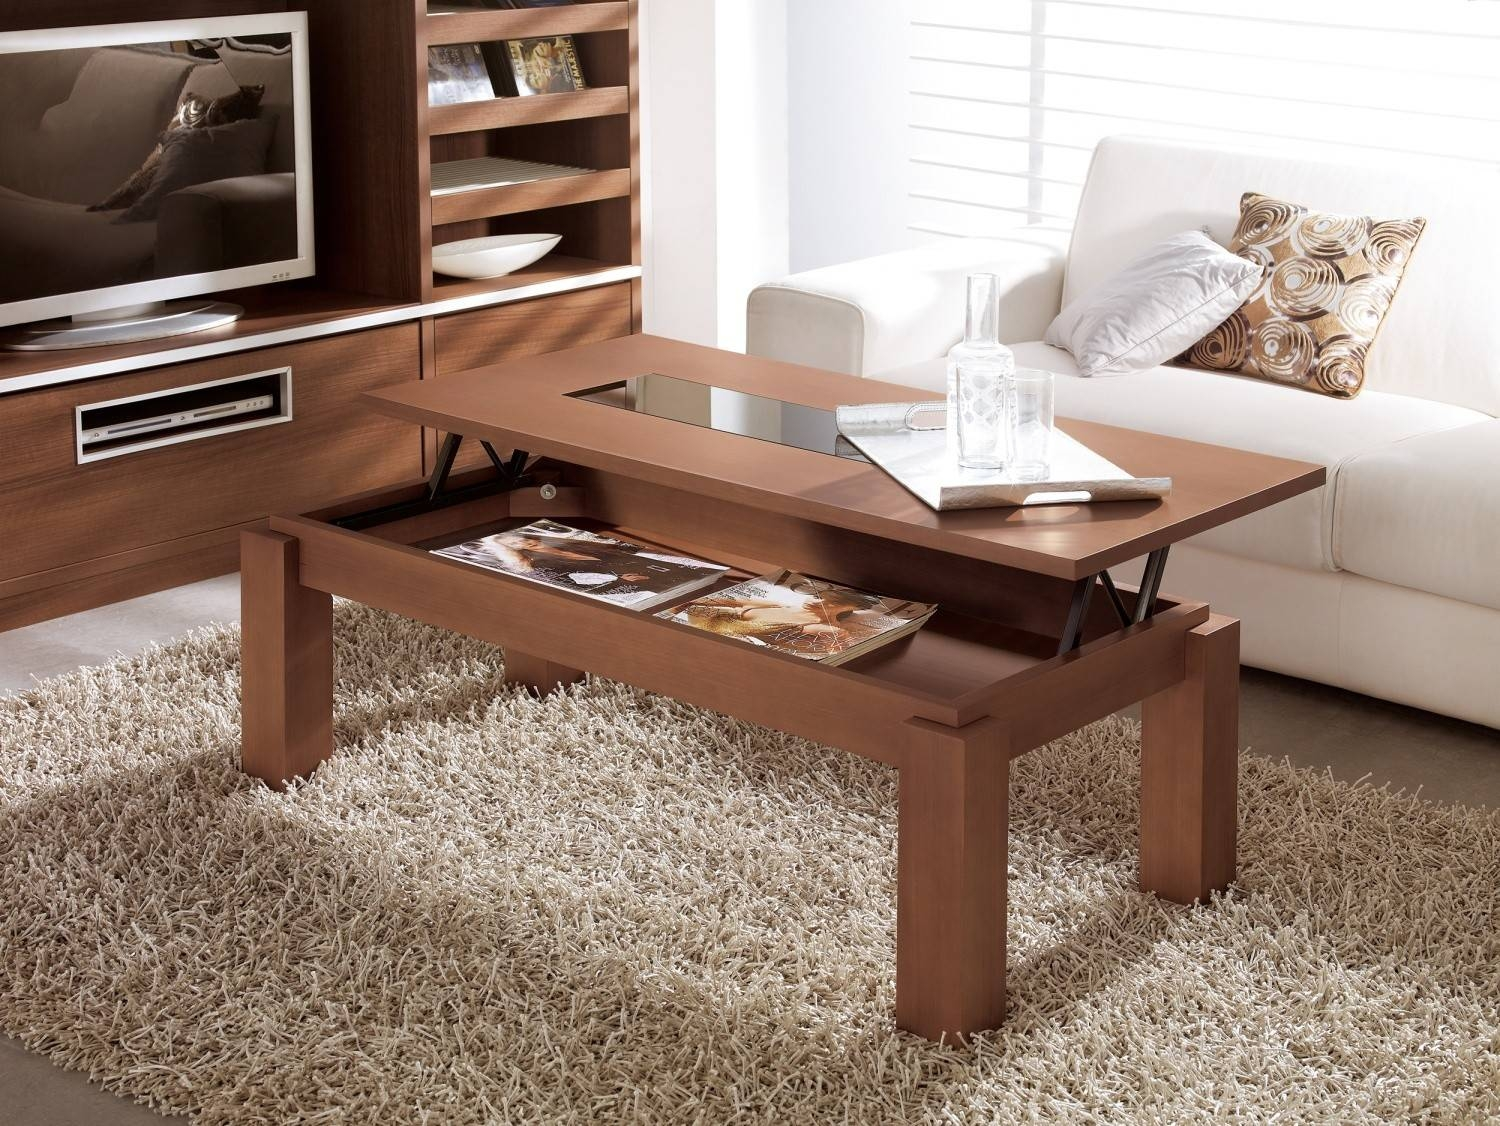 Lift Up Coffee Table Lift Up Coffee Tables ~ Bacill pertaining to Pull Up Coffee Tables (Image 21 of 30)